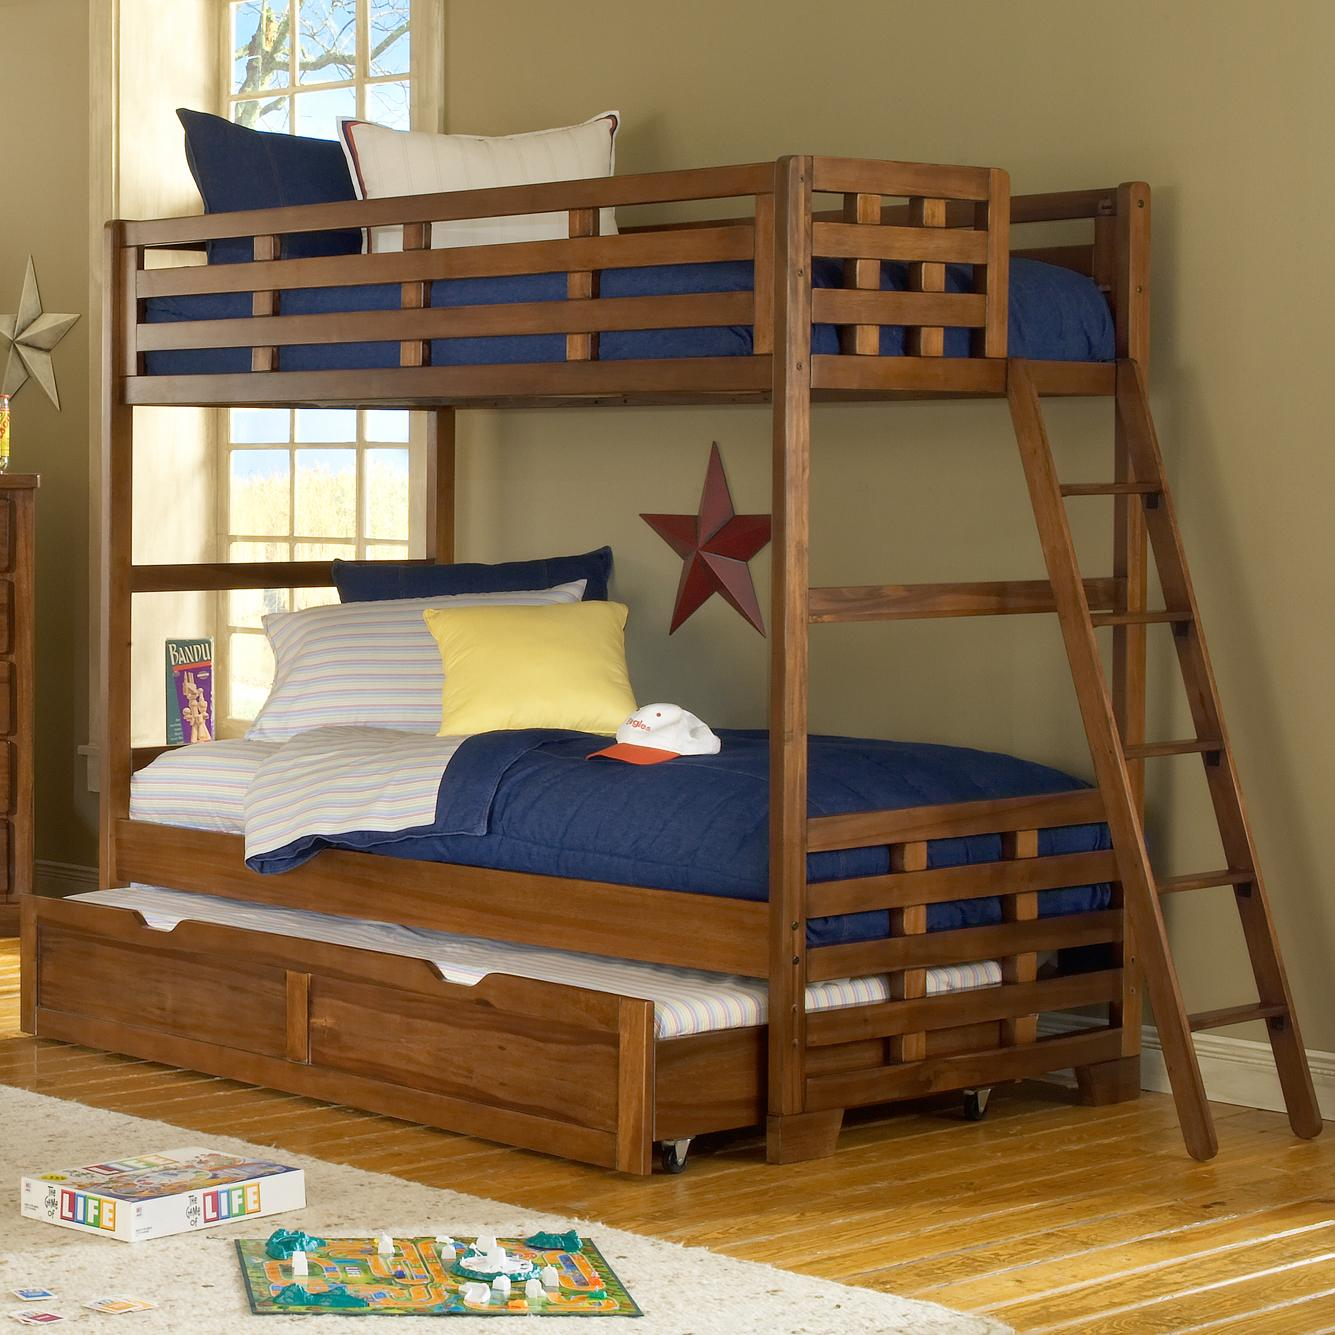 Image of: Loft Bed with Trundle and Ladder